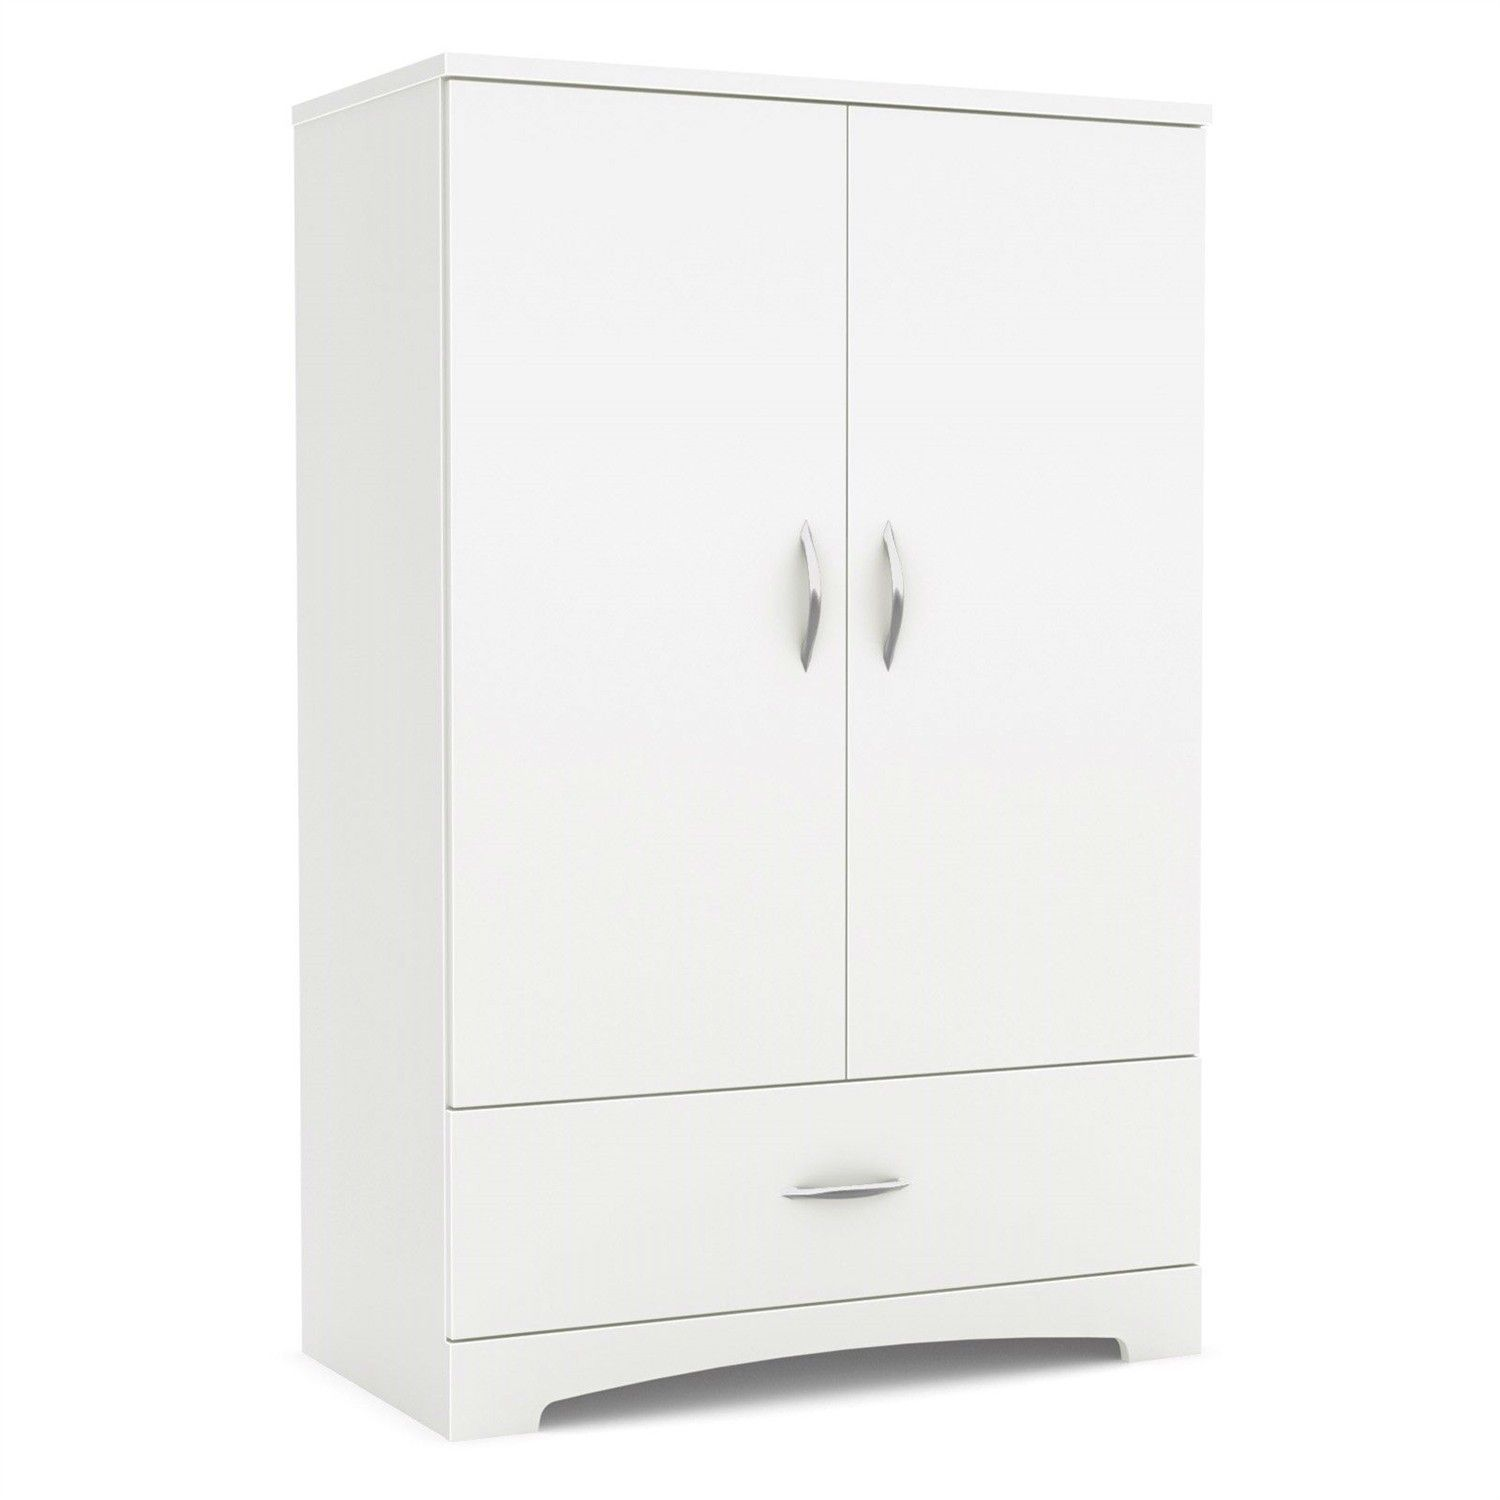 2 Door Armoire Wardrobe Cabinet With Bottom Storage Drawer In White